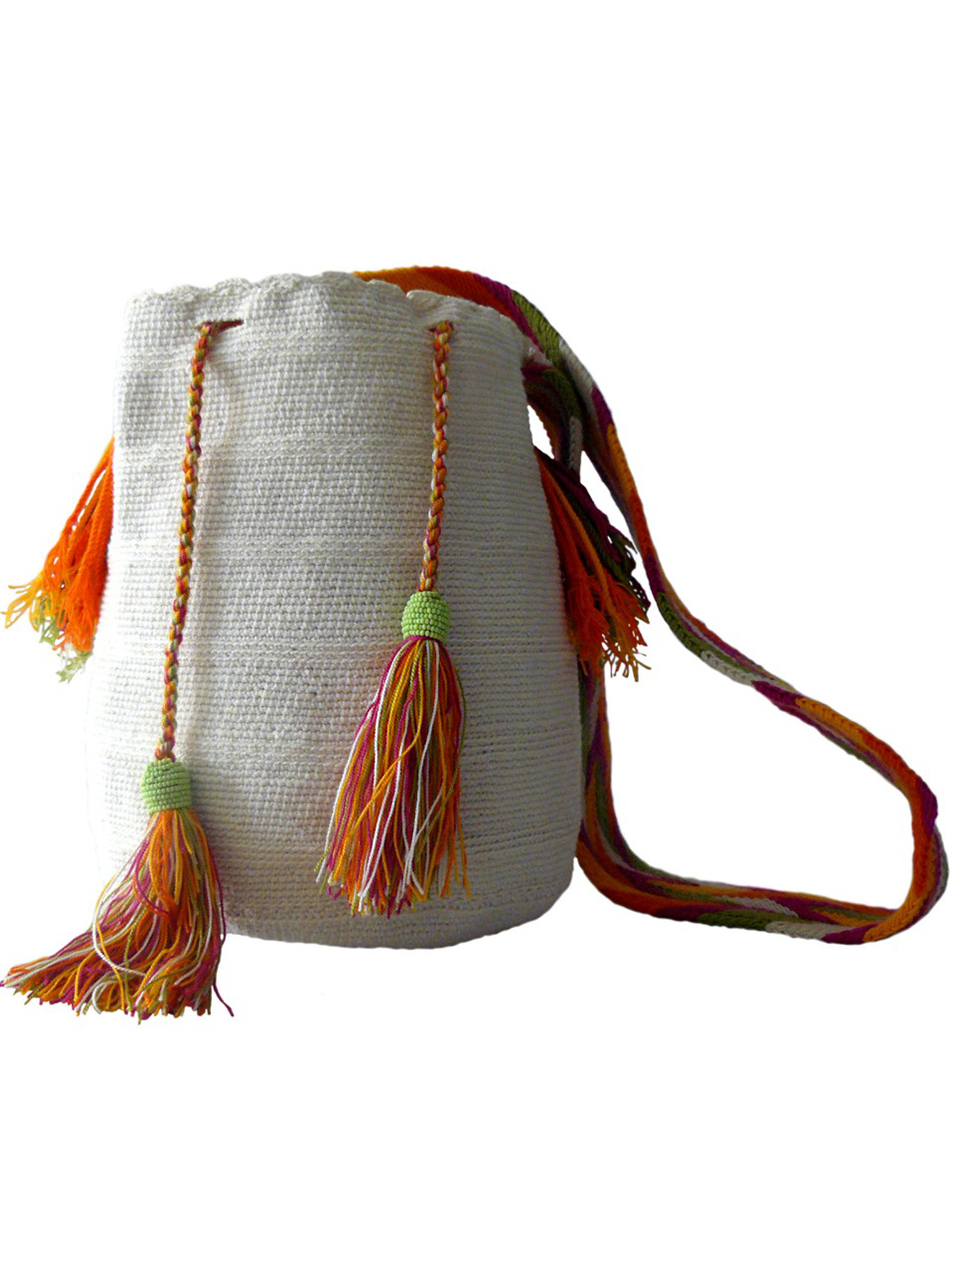 White woven shoulder bag with tassels and beads Palmazul Beachwear Wayuu Mochila